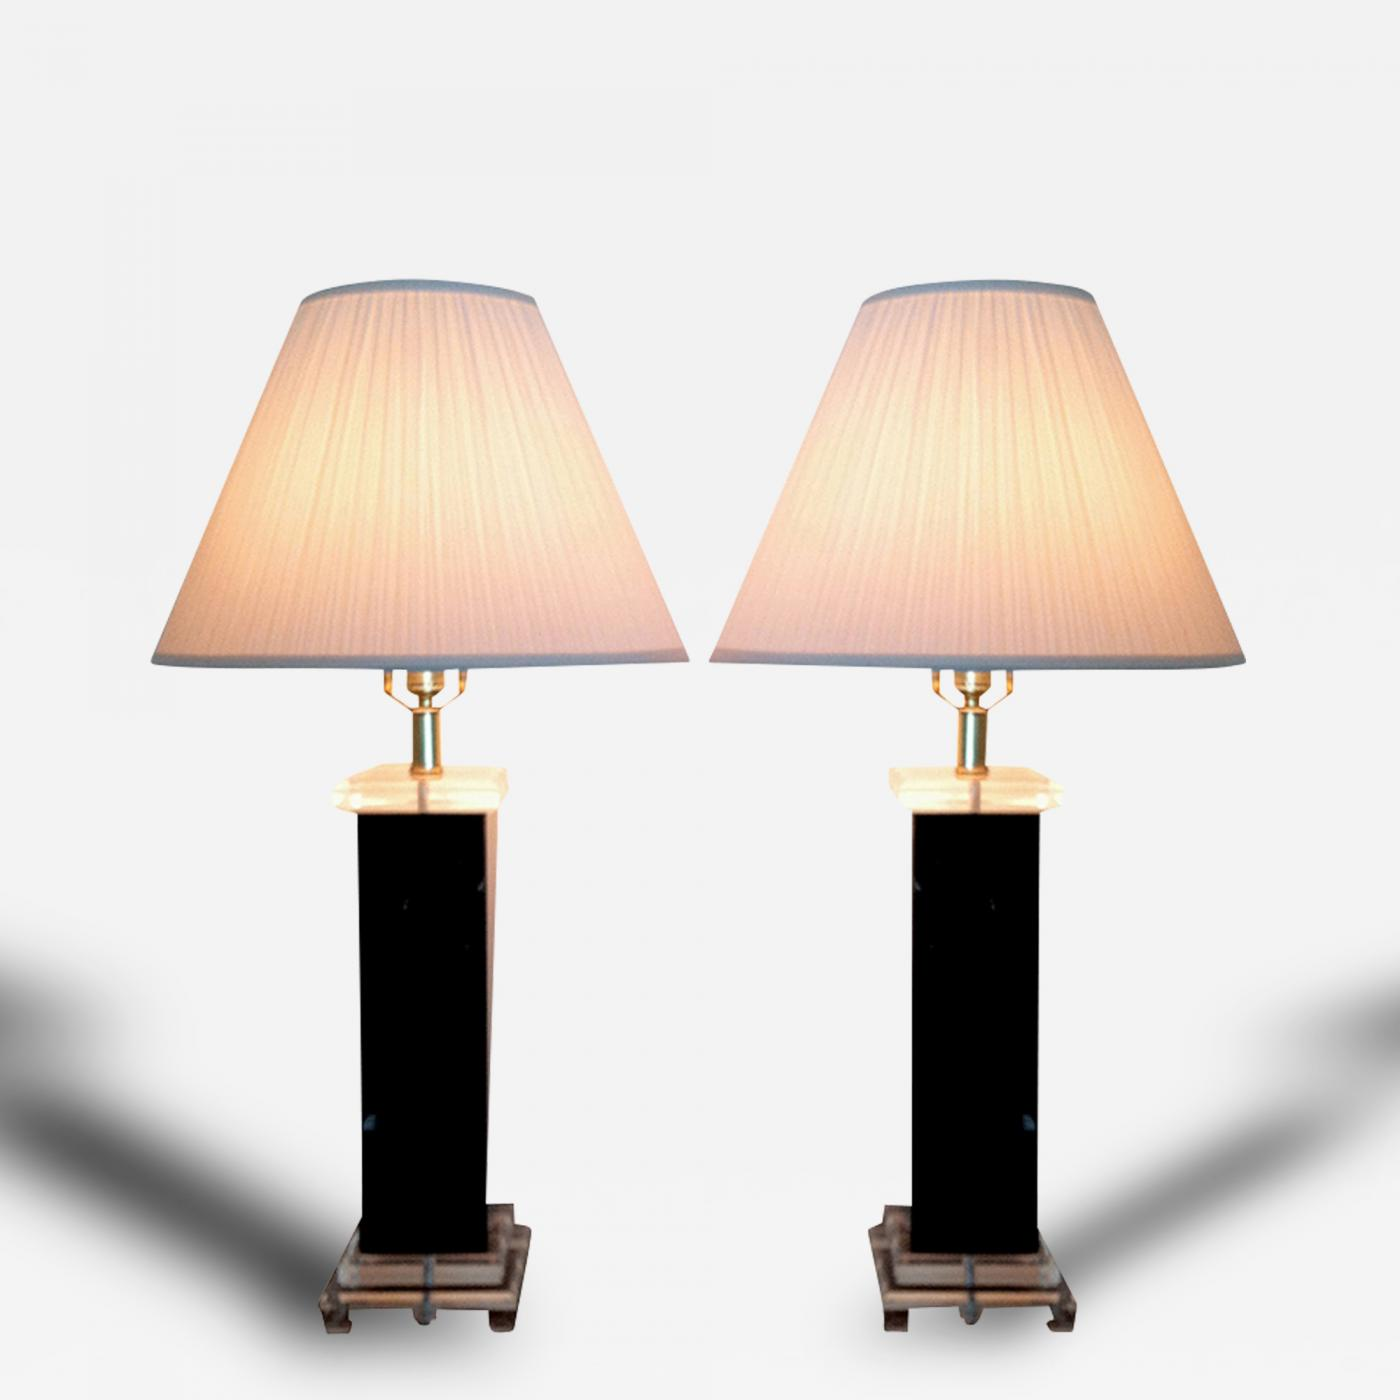 Exceptionnel Listings / Furniture / Lighting / Table Lamps